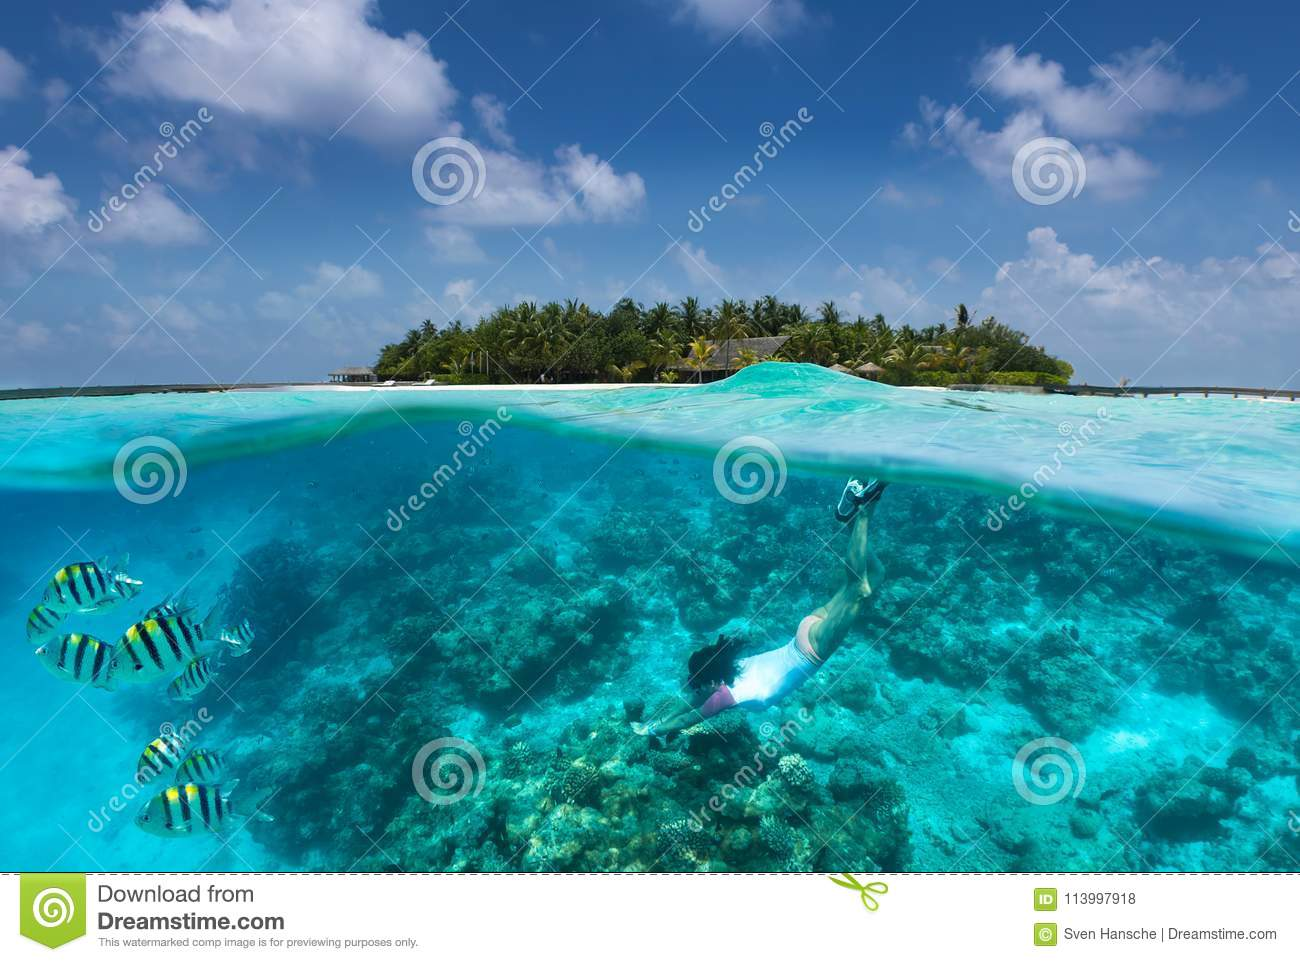 Sportive girl snorkels in turquoise waters over a coral reef in the Maldives